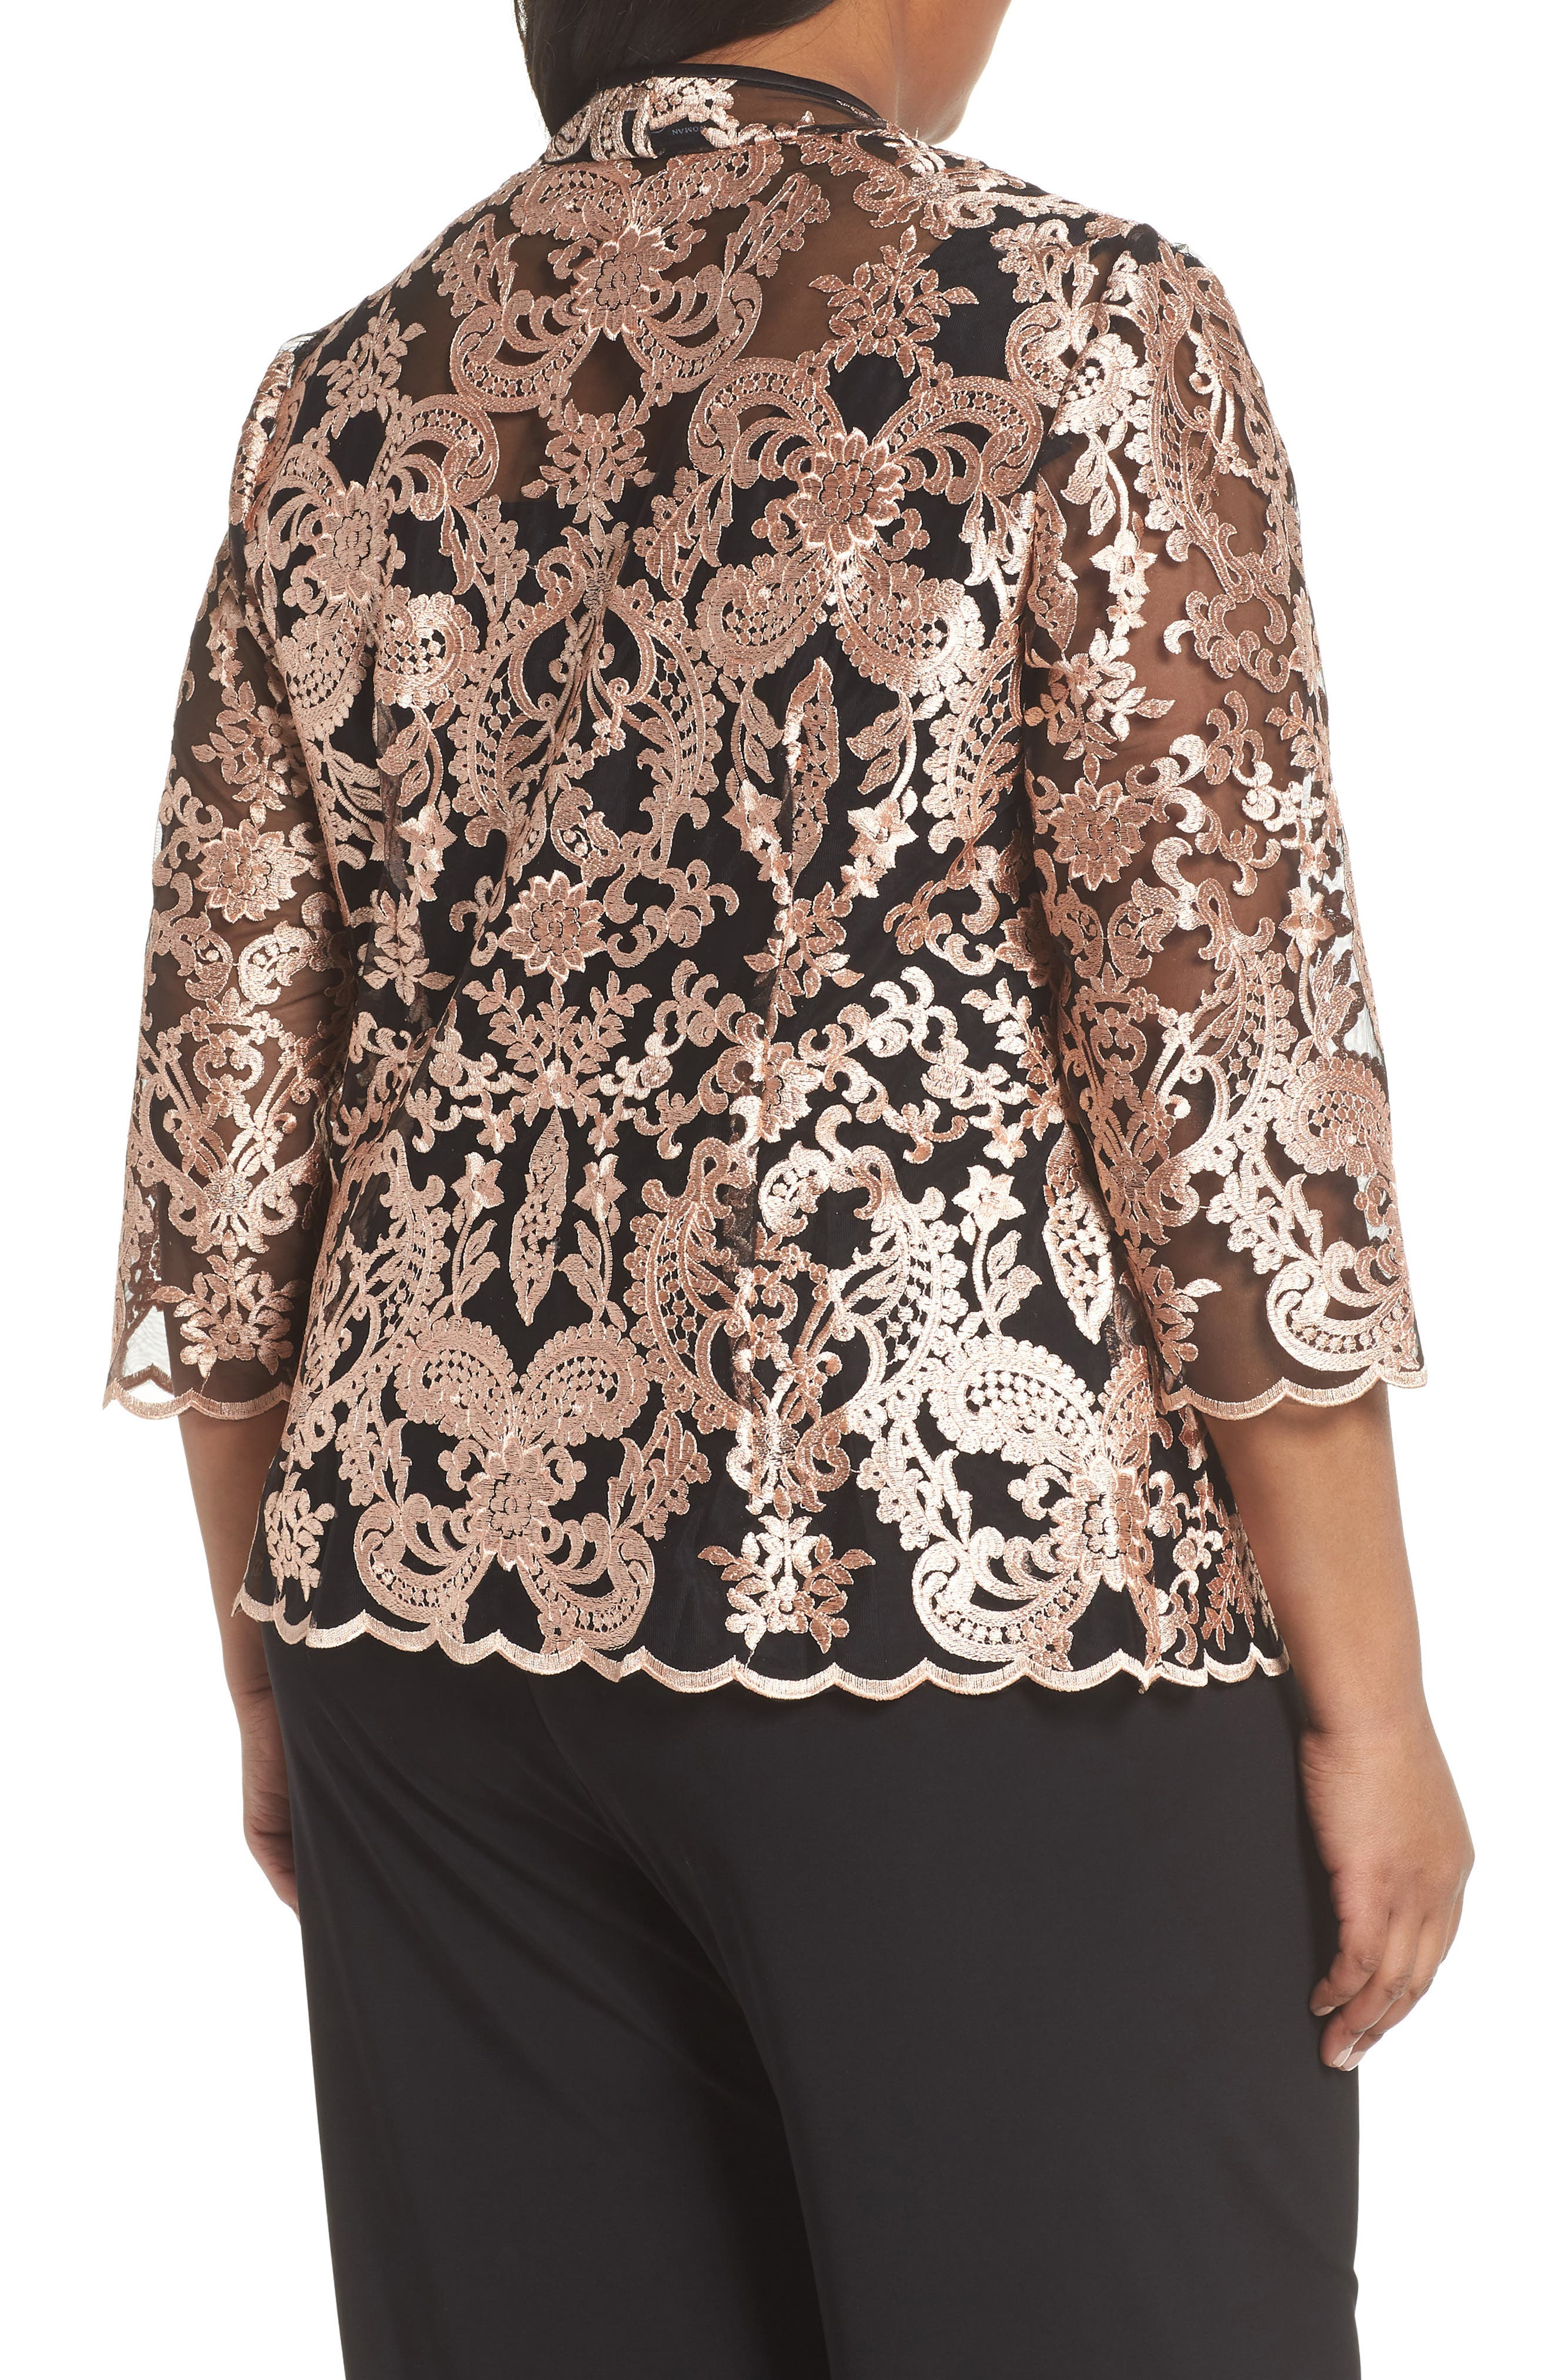 Top & Embroidered Jacket,                             Alternate thumbnail 2, color,                             001